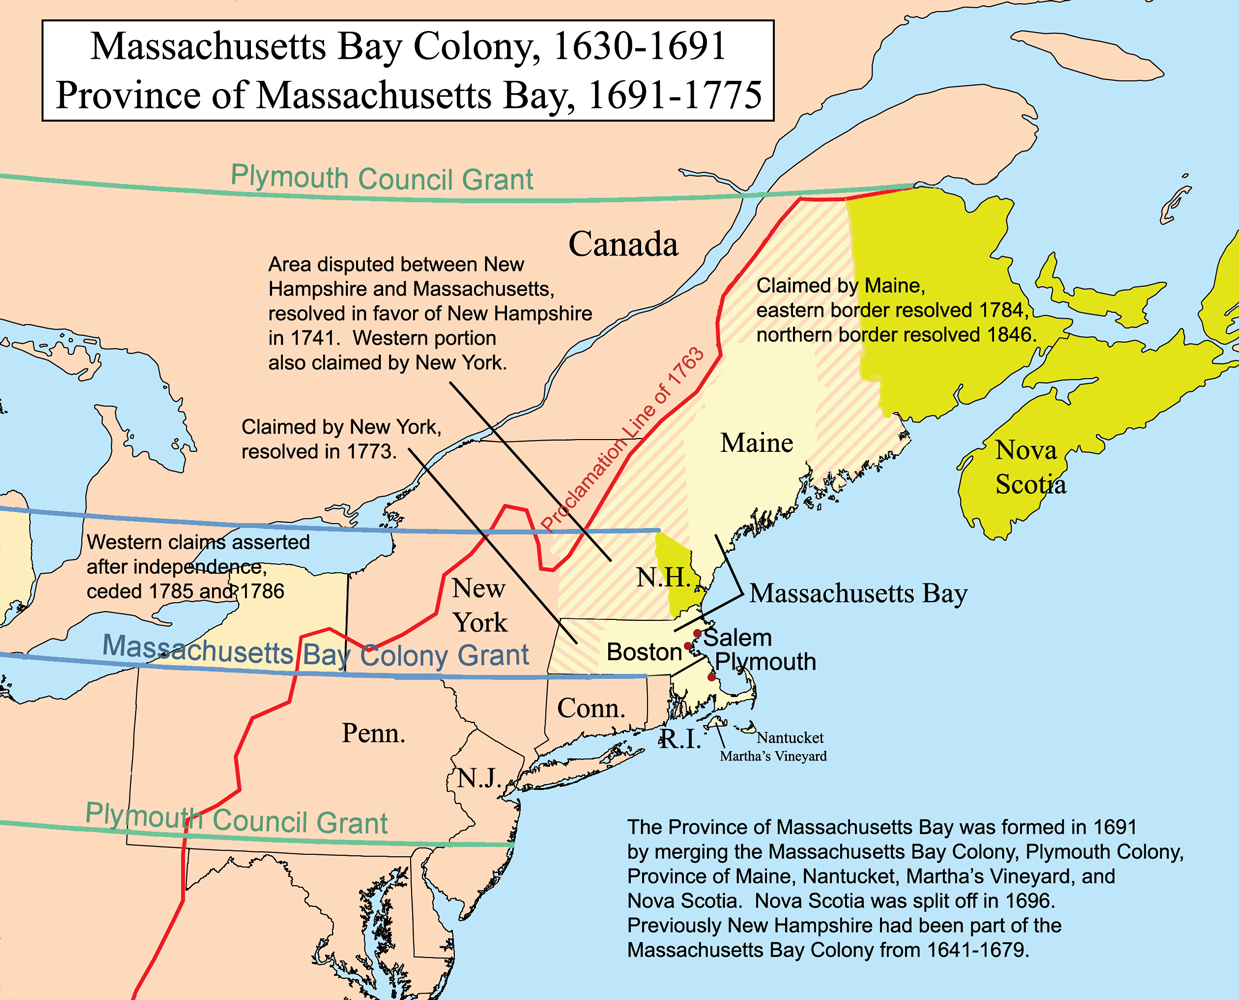 The Chesapeake Colonies and New England Colonies Essay